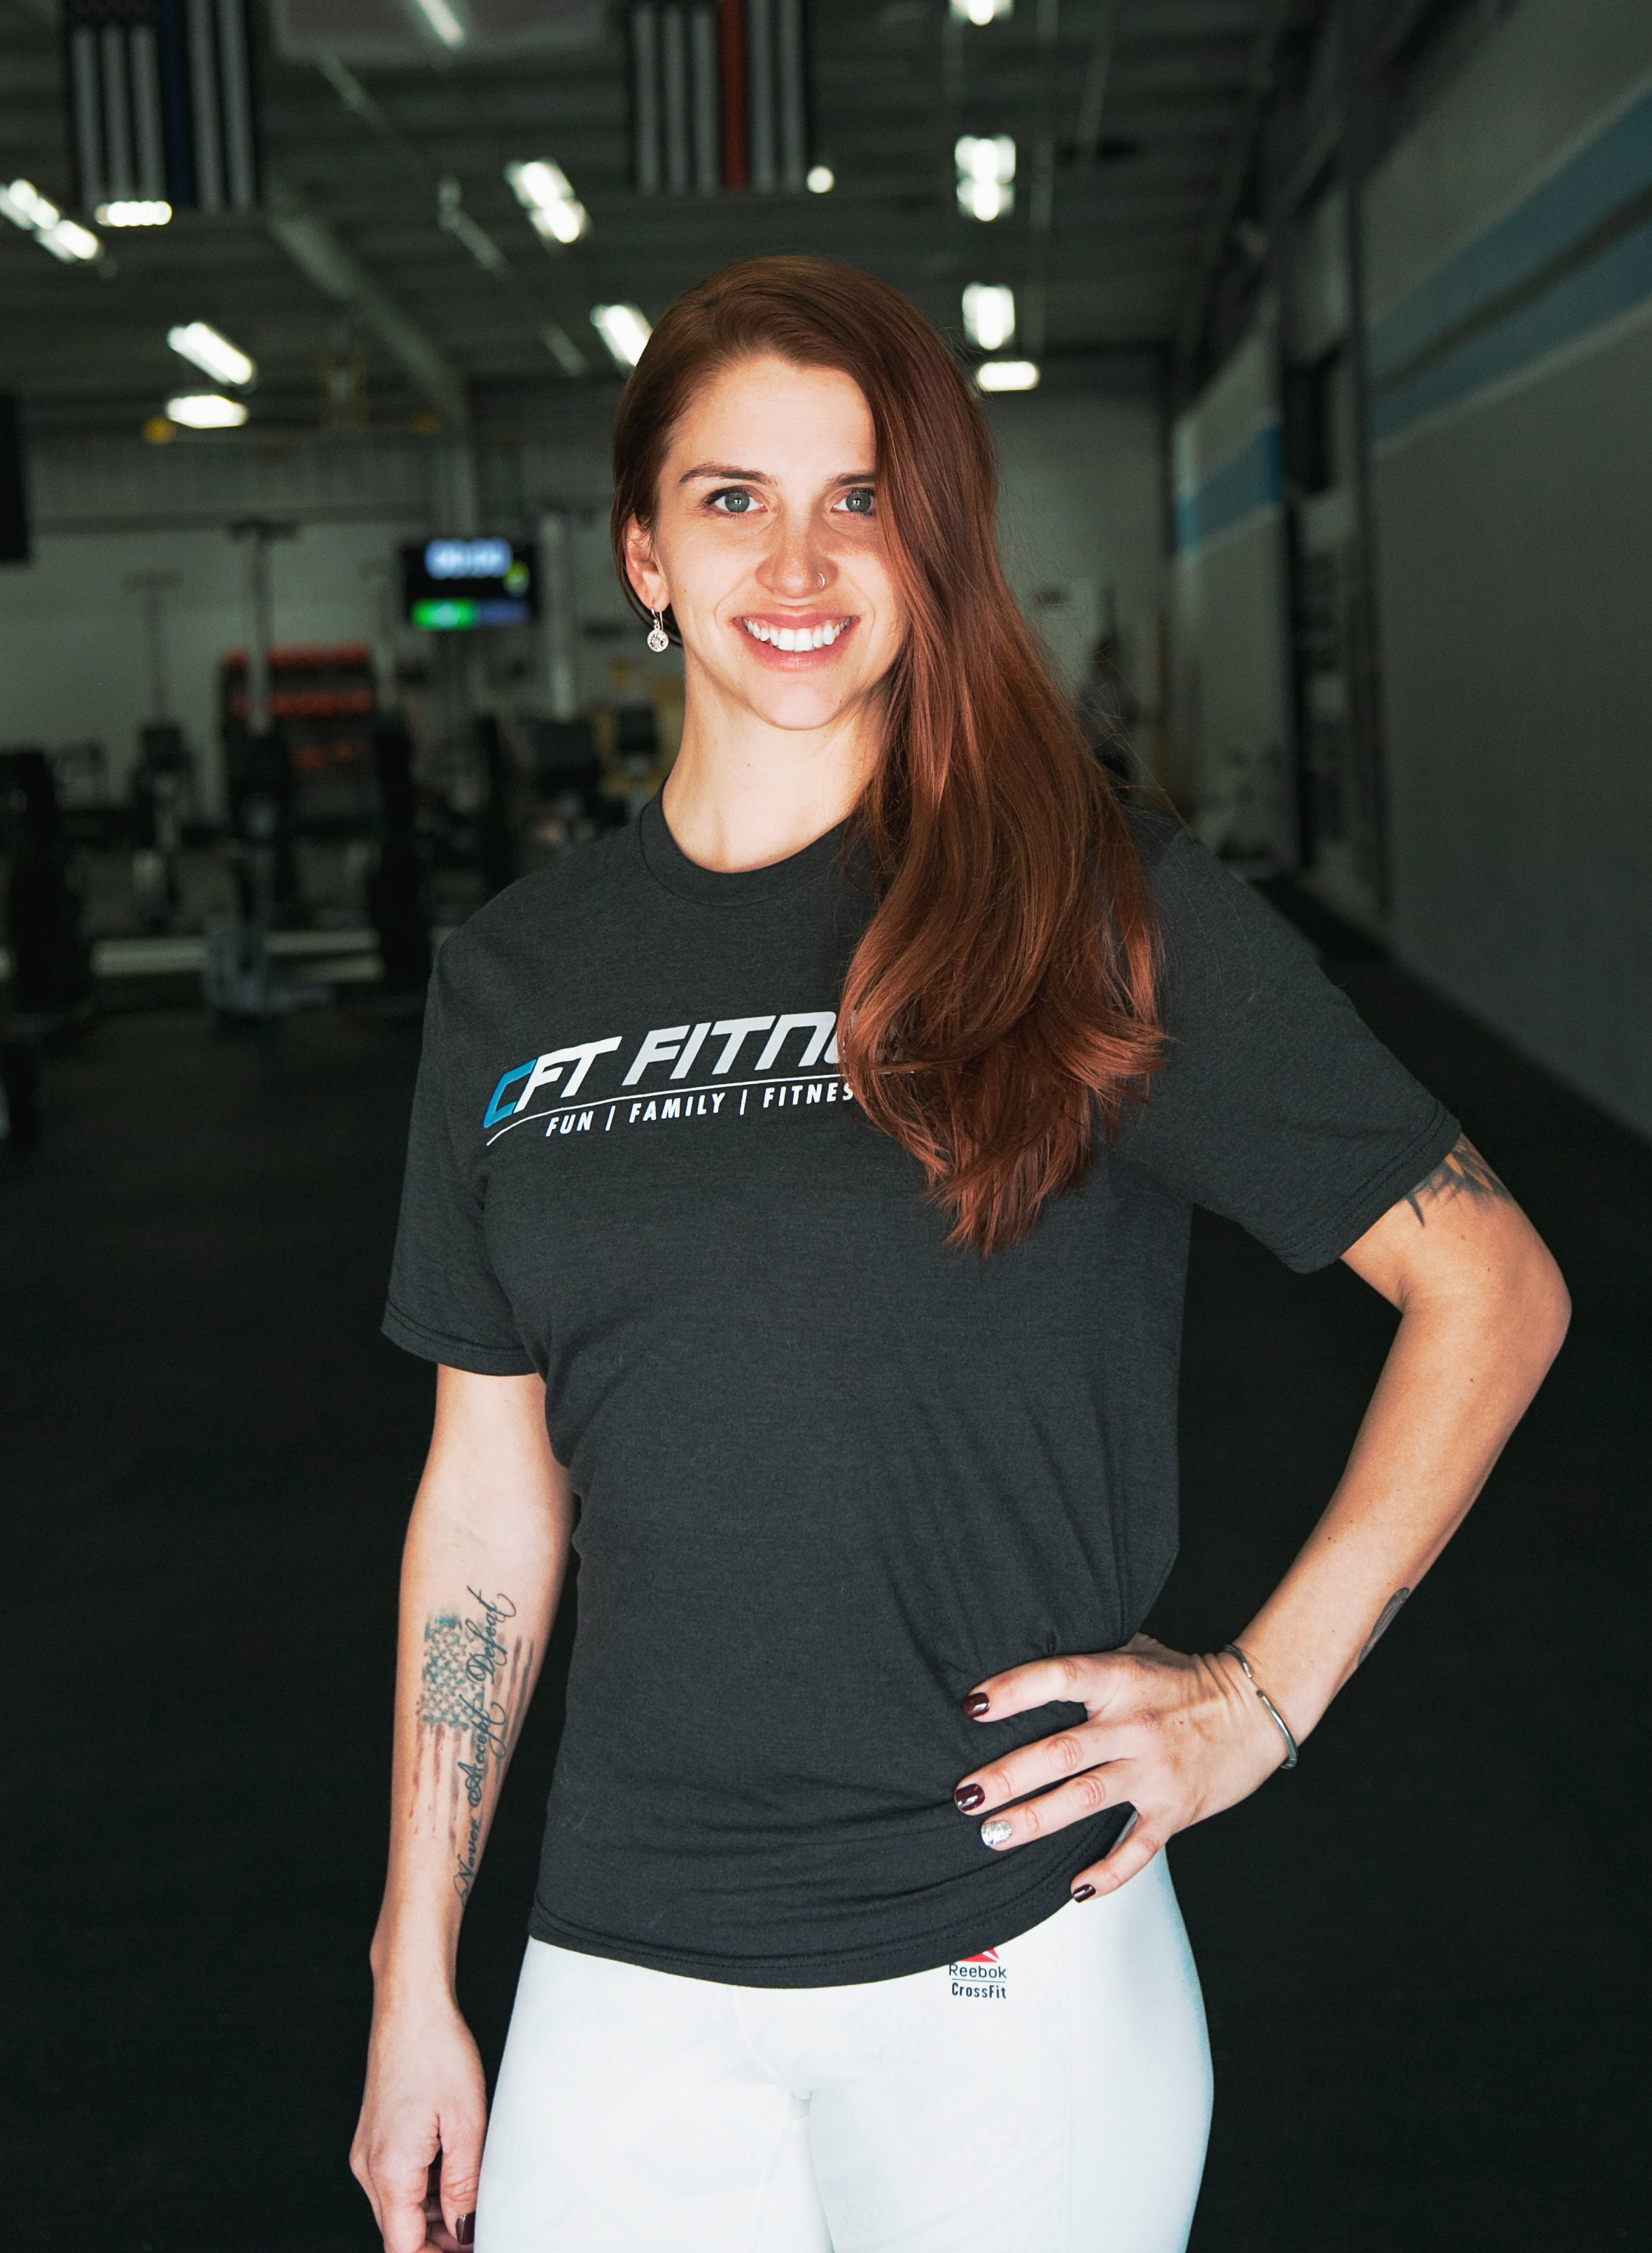 Hi! My name is Lizzie Michael. - I started working at CFT earlier this year when I was looking for another training job. I was so happy to be brought on the team, especially since I was a client since I moved here in 2015. I am here to help you find deficiencies and take you back to basic, back to neutral and build up from there. Giving you more pleasure in your life than pain, prepping you for group glasses or more advanced movements.Little bit about myself, I'm a farm girl from the east coast and I refuse to say Hella. I also cannot help myself from dancing when music is on.If someone was on the fence about whether joining CFT is the right choice, I would help them to see the benefit of having such a variety of coaches and classes to choose from. We work with anyone's compensations, deficiencies and/or injuries, no matter the skill level. This way we can help them build a foundation and a routine to improve their movement efficiency and relieve their body of aches and pains. Guidance and skills to improve their health in the long run. Along with a fun and family oriented facility.Book a session with Lizzie ➝